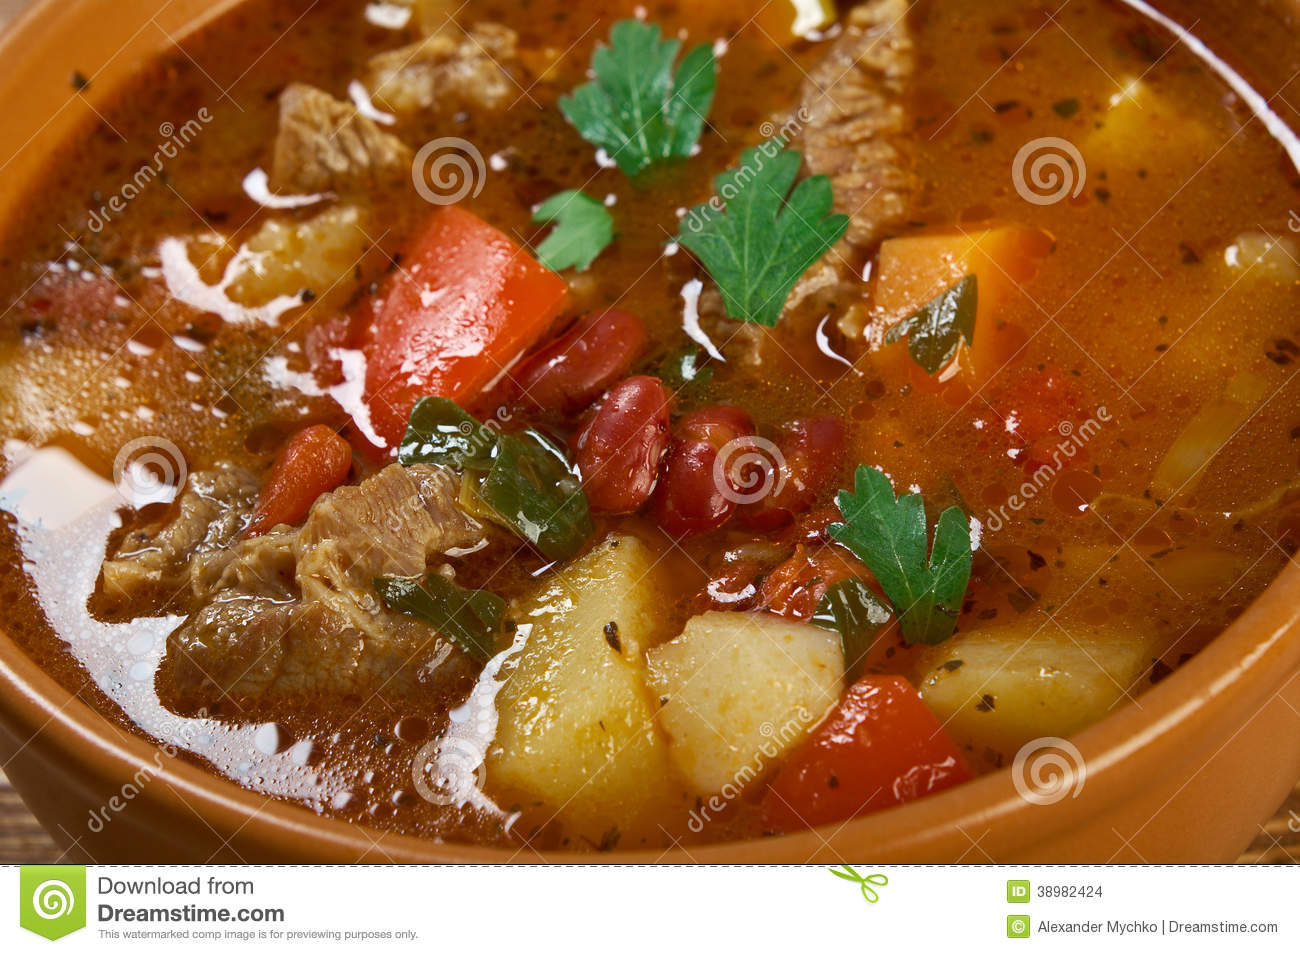 Eintopf traditional german cuisine dish stock photo for Authentic german cuisine